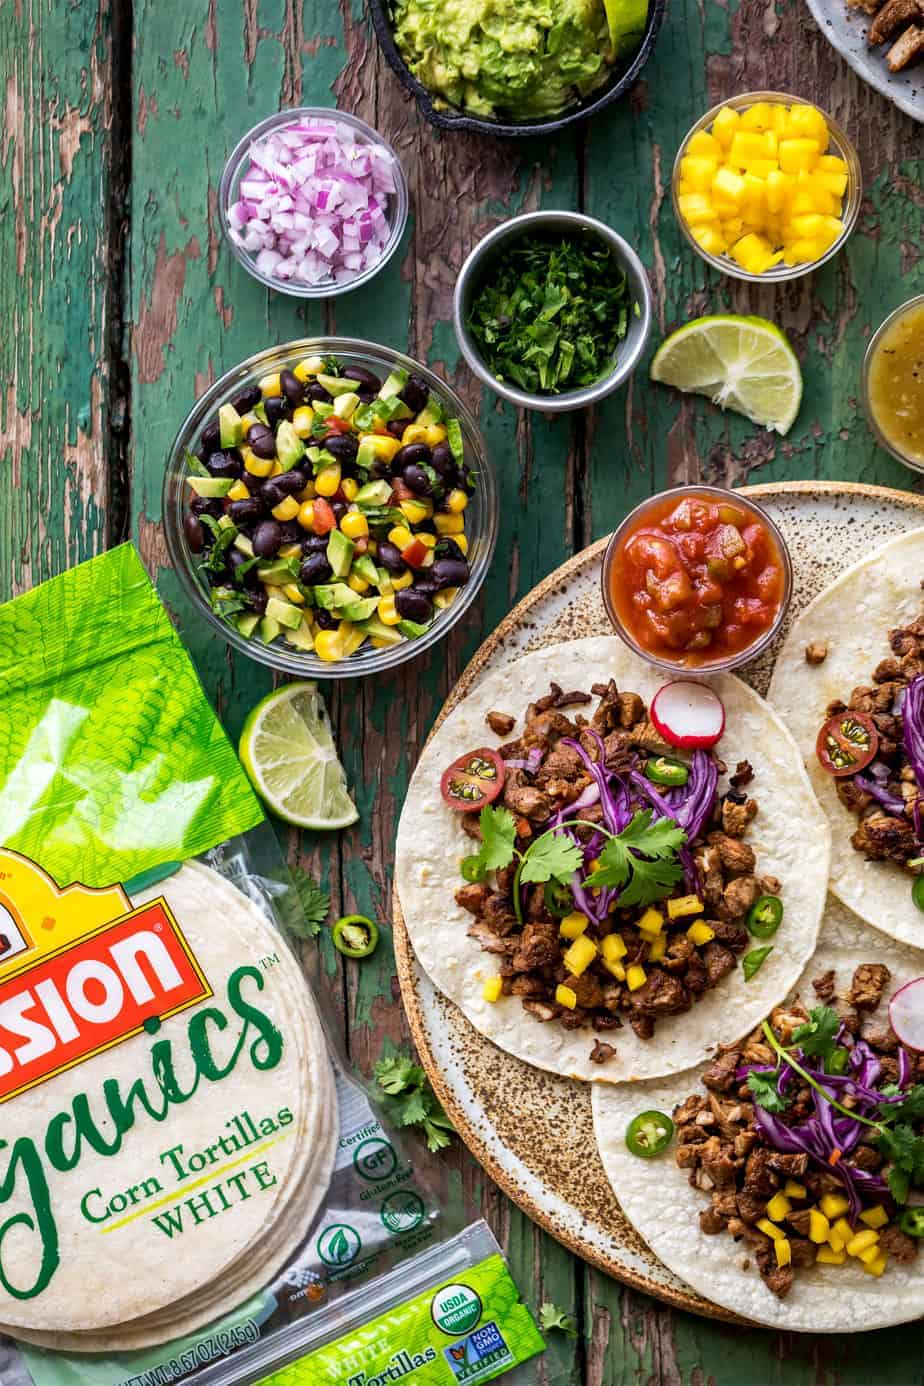 Korean Pork Bulgogi Fusion Taco with mission organics tortillas.